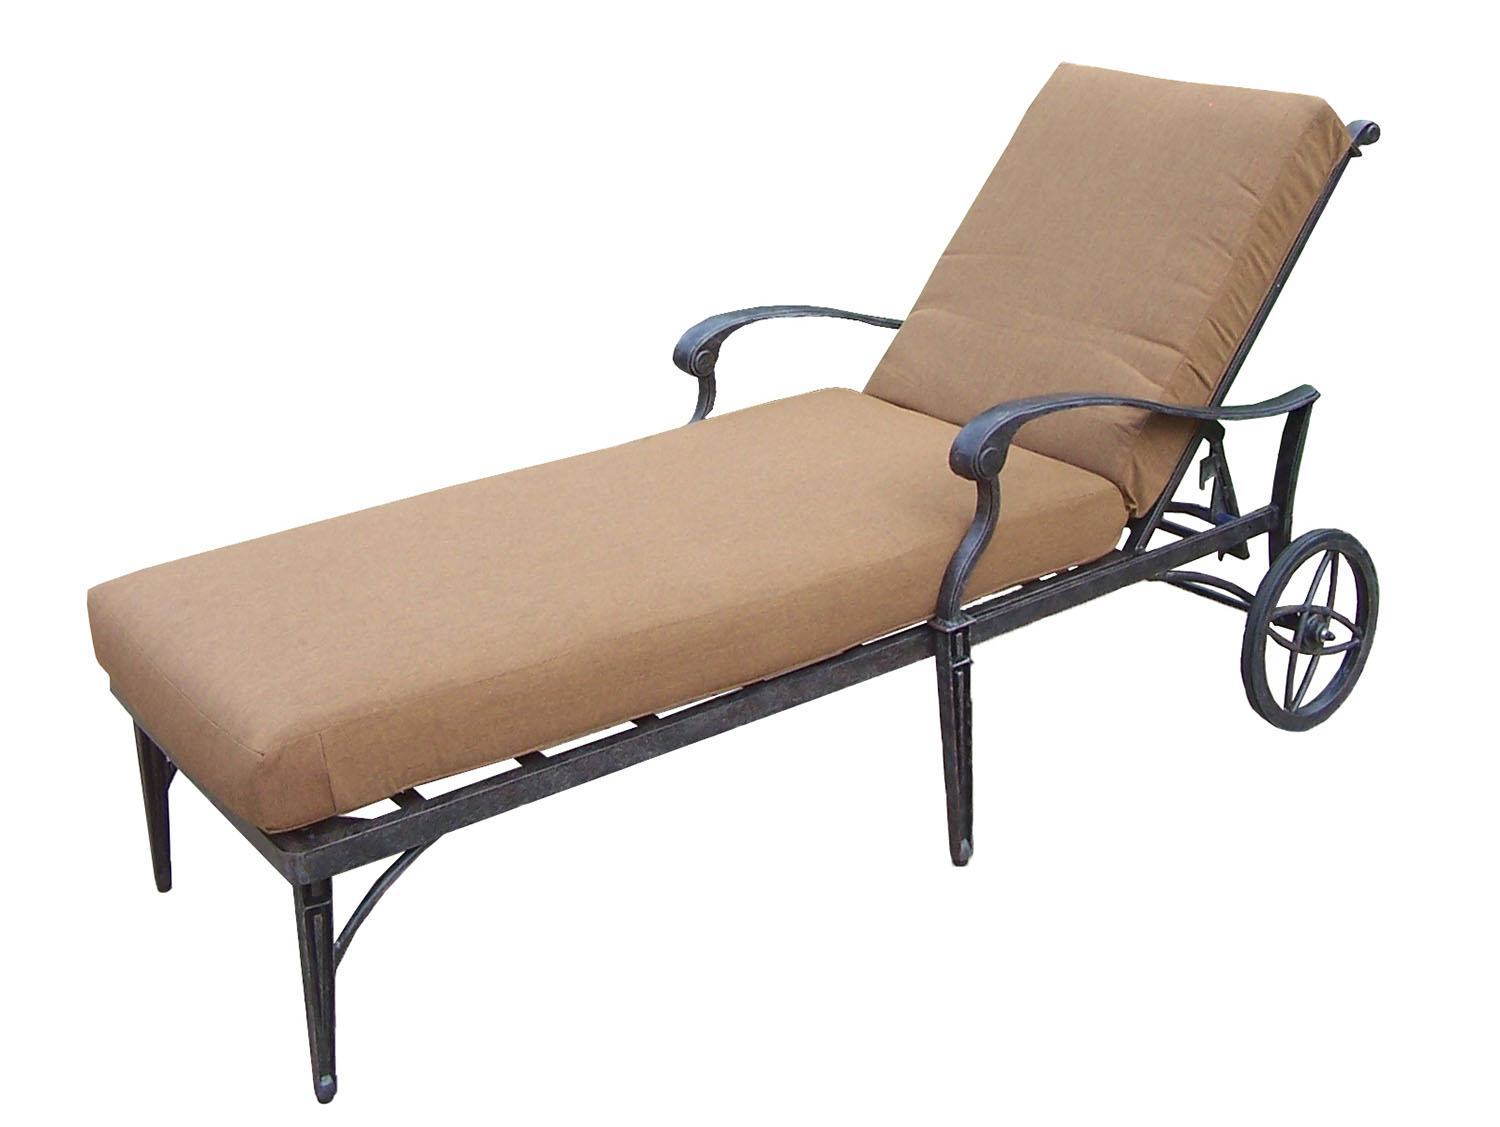 Affordable Belmont Aluminum Chaise Lounge On Wheels Product Photo